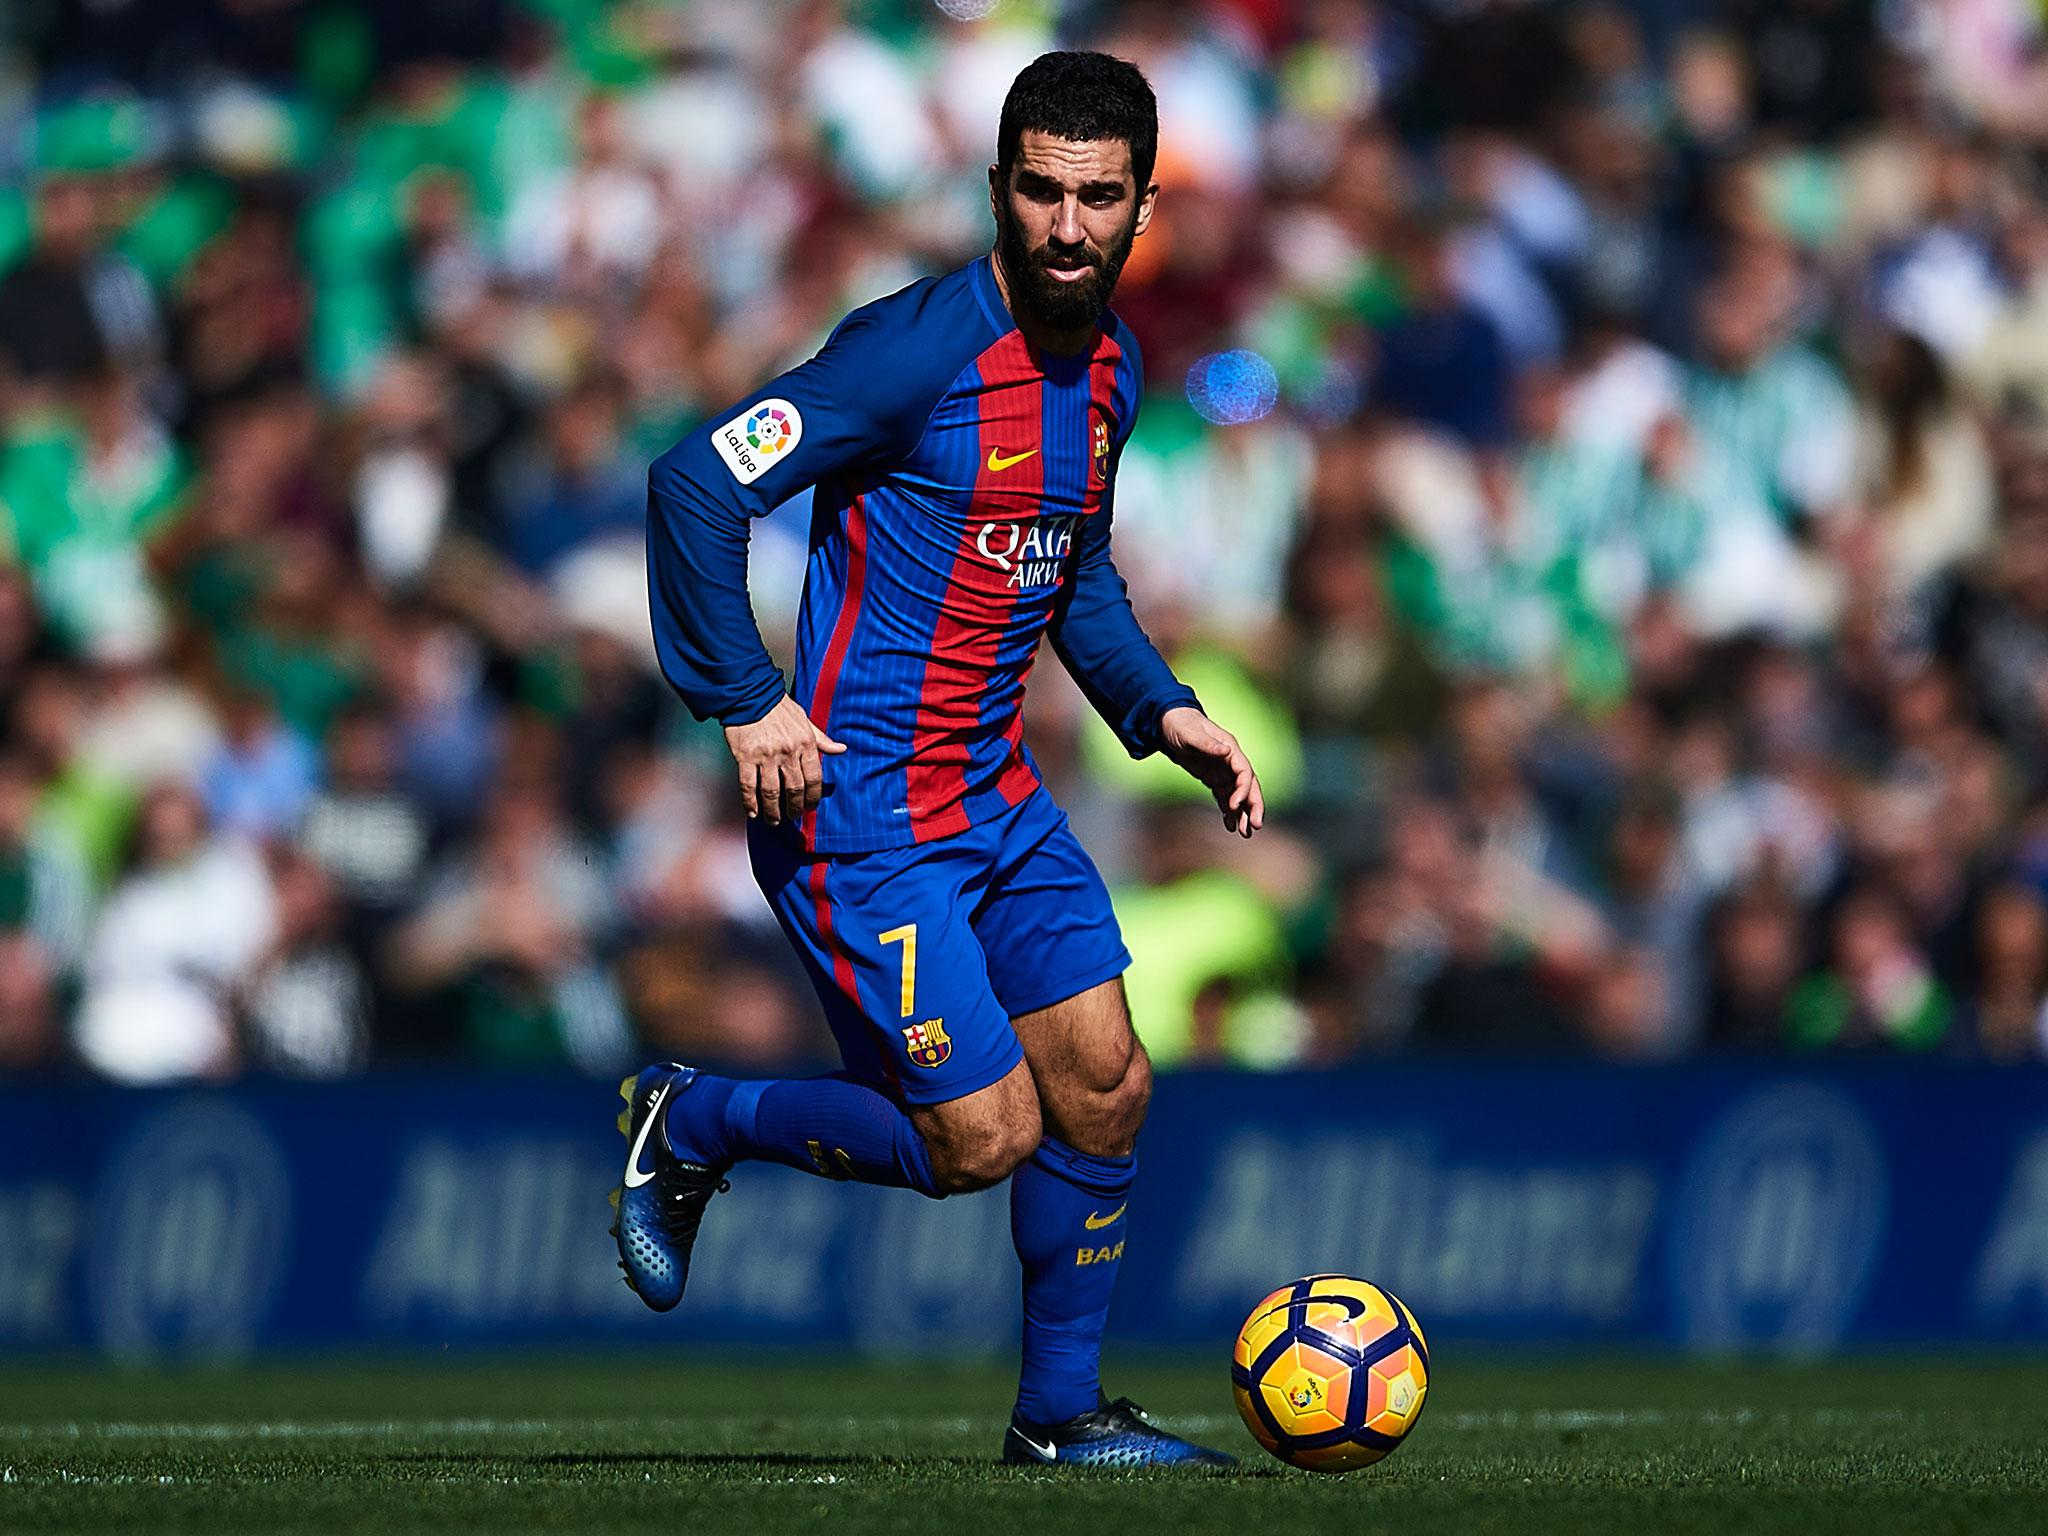 Arsenal unlikely to sign Arda Turan as Barcelona midfielder wants